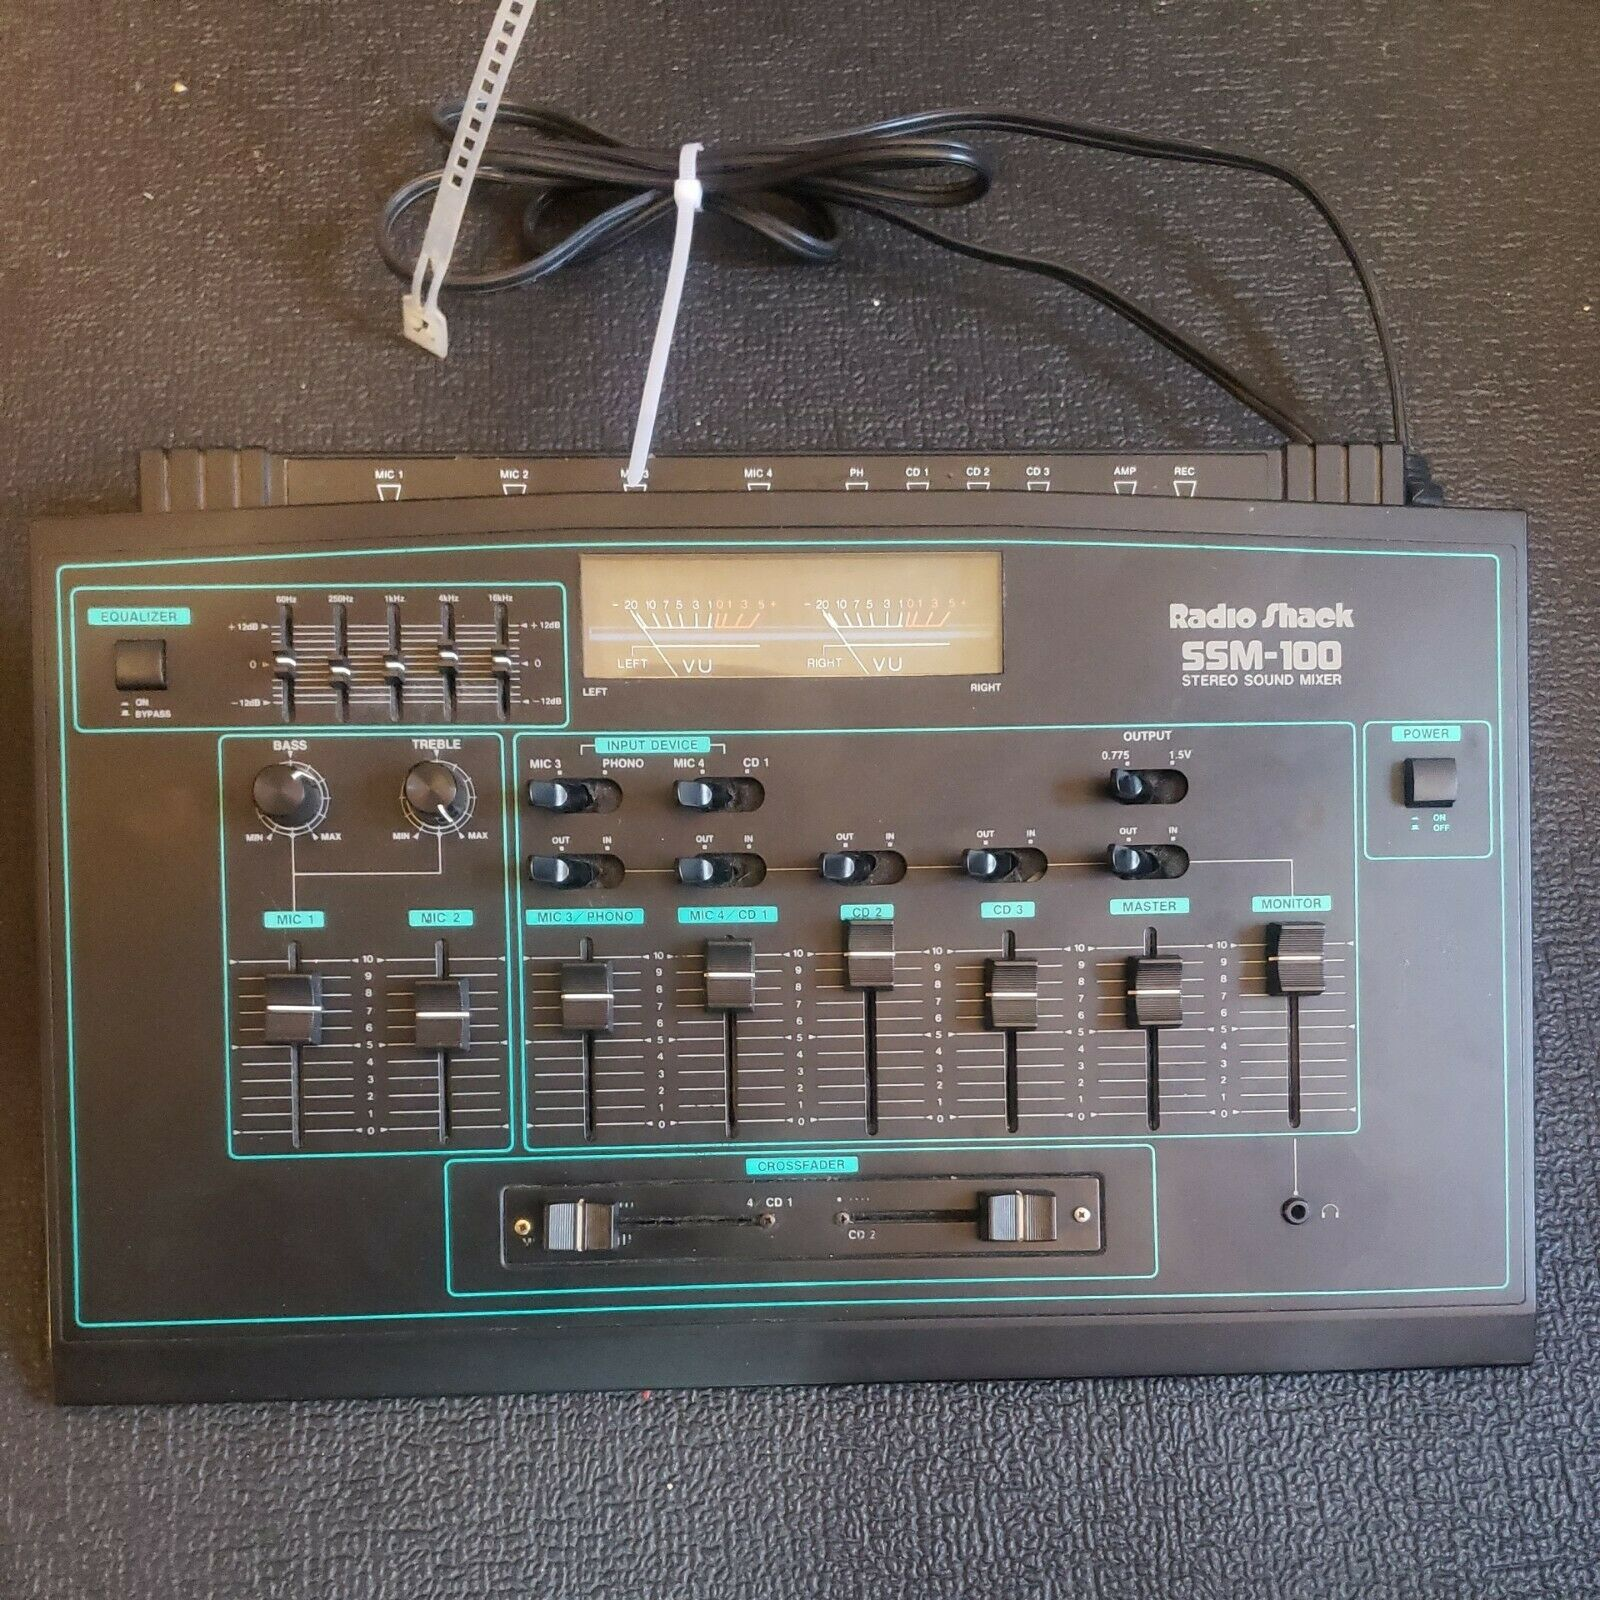 Radio Shack Stereo Audio Sound Mixer w/ Equalizer SSM-100  (Powers On/ Sold.... Buy it now for 69.95